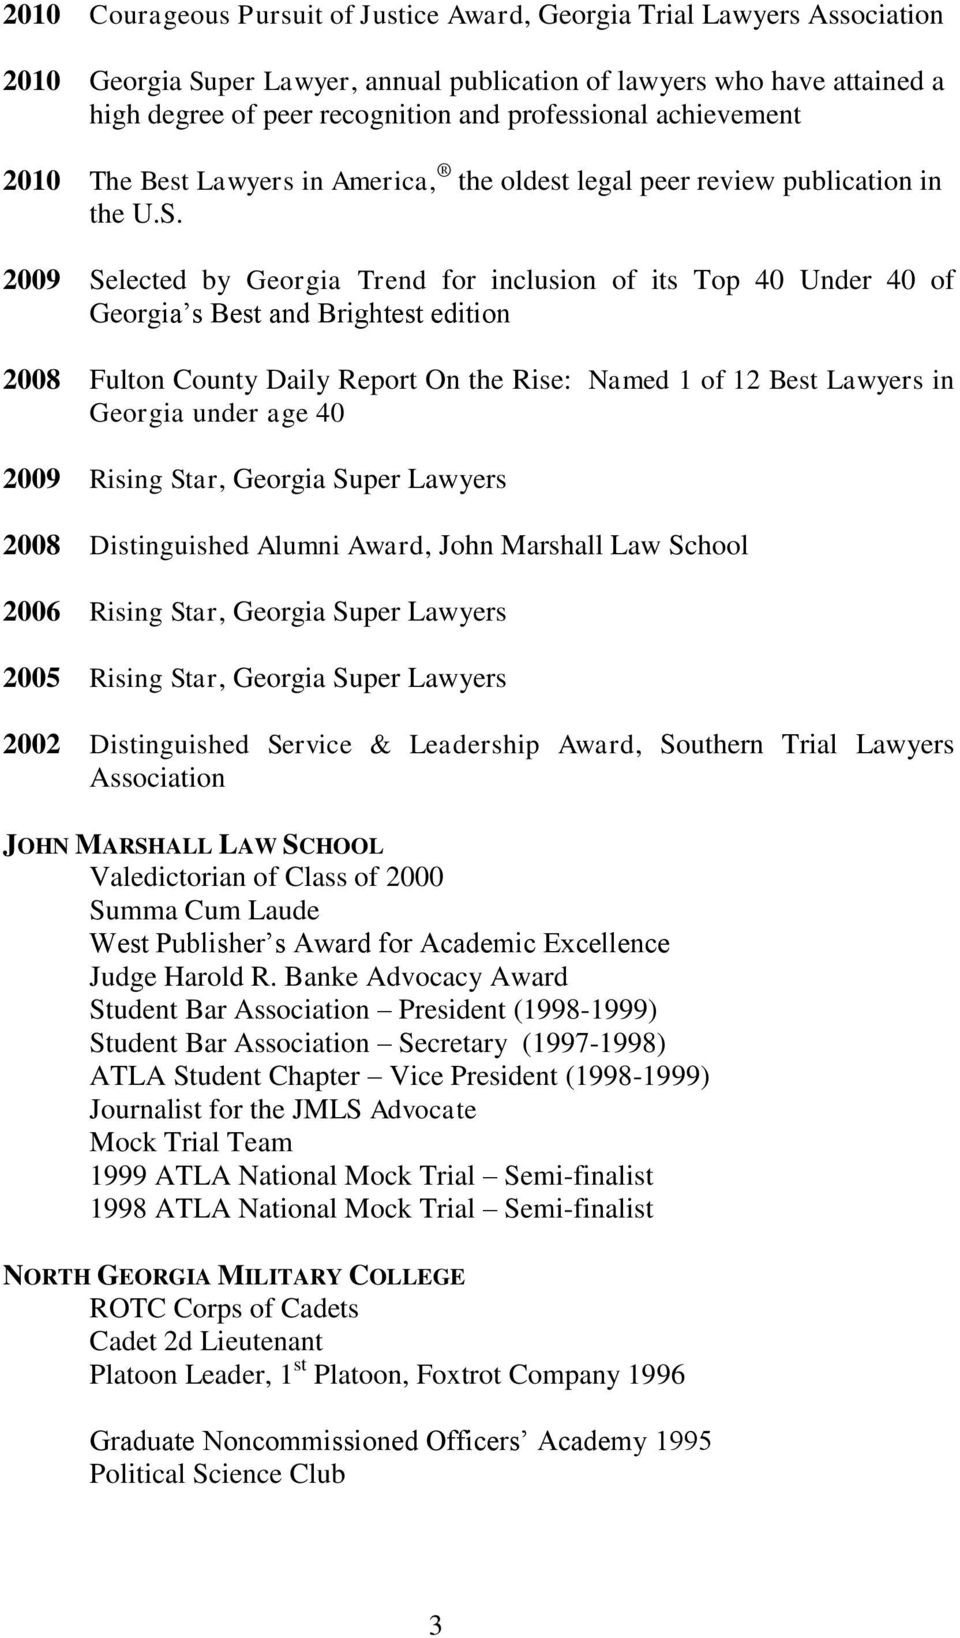 2009 Selected by Georgia Trend for inclusion of its Top 40 Under 40 of Georgia s Best and Brightest edition 2008 Fulton County Daily Report On the Rise: Named 1 of 12 Best Lawyers in Georgia under